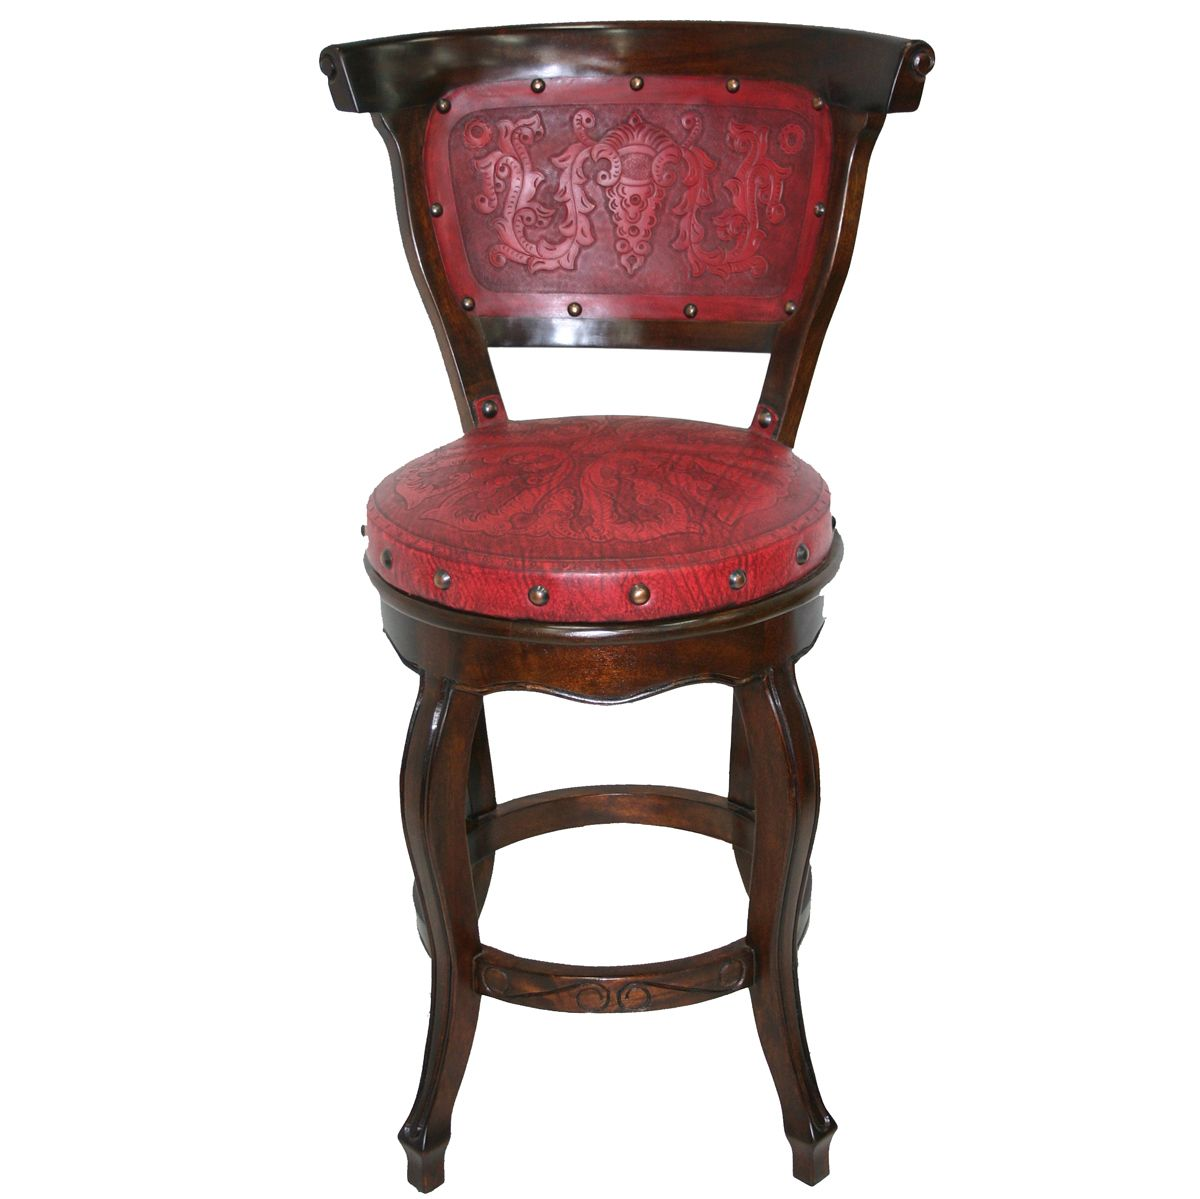 Spanish Heritage Swivel Barstool with Back - Red